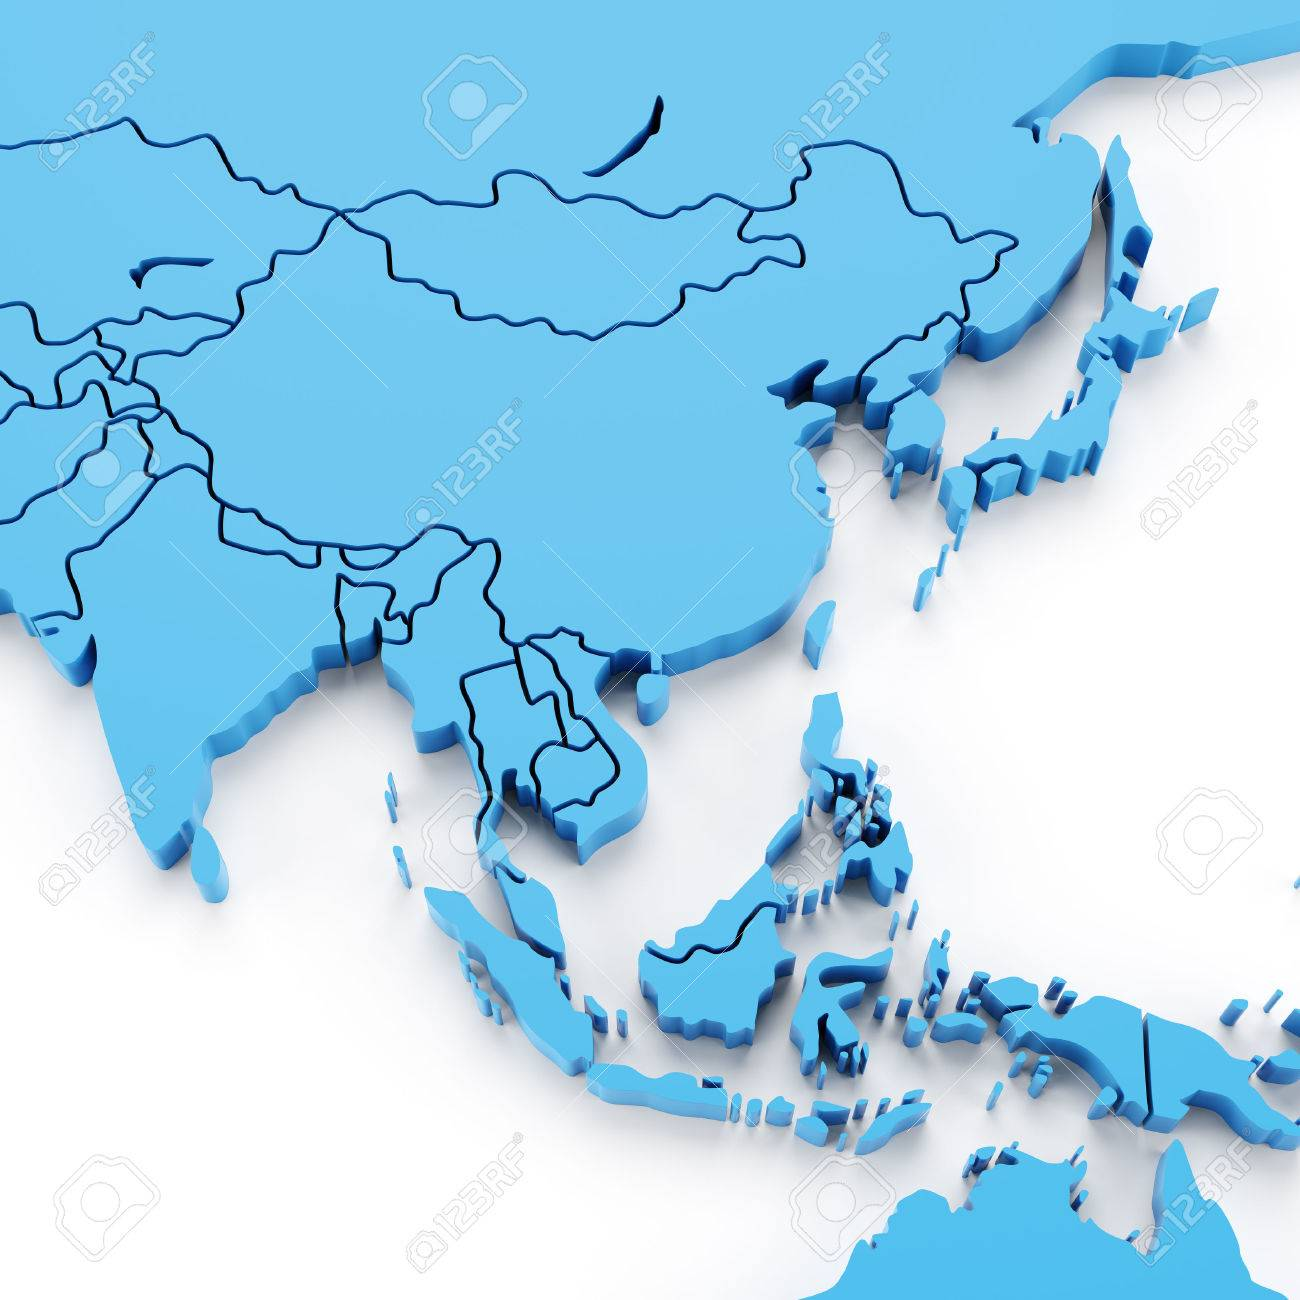 Map Of Asia 3d.Extruded Map Of Asia With National Borders 3d Render